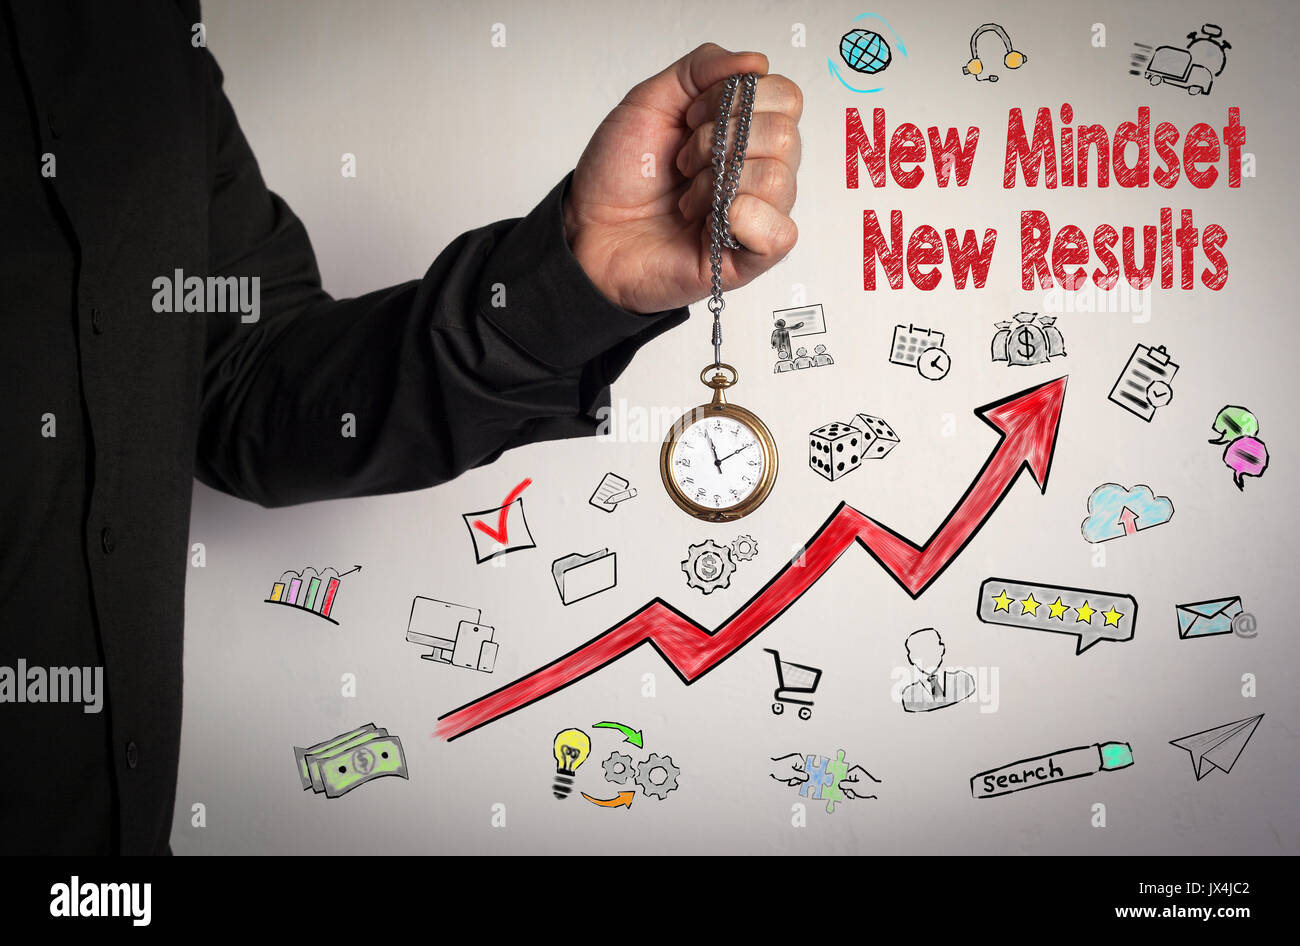 New Mindset New Results concept. Red Arrow and Icons Around. Man holding chain clock on white background. - Stock Image